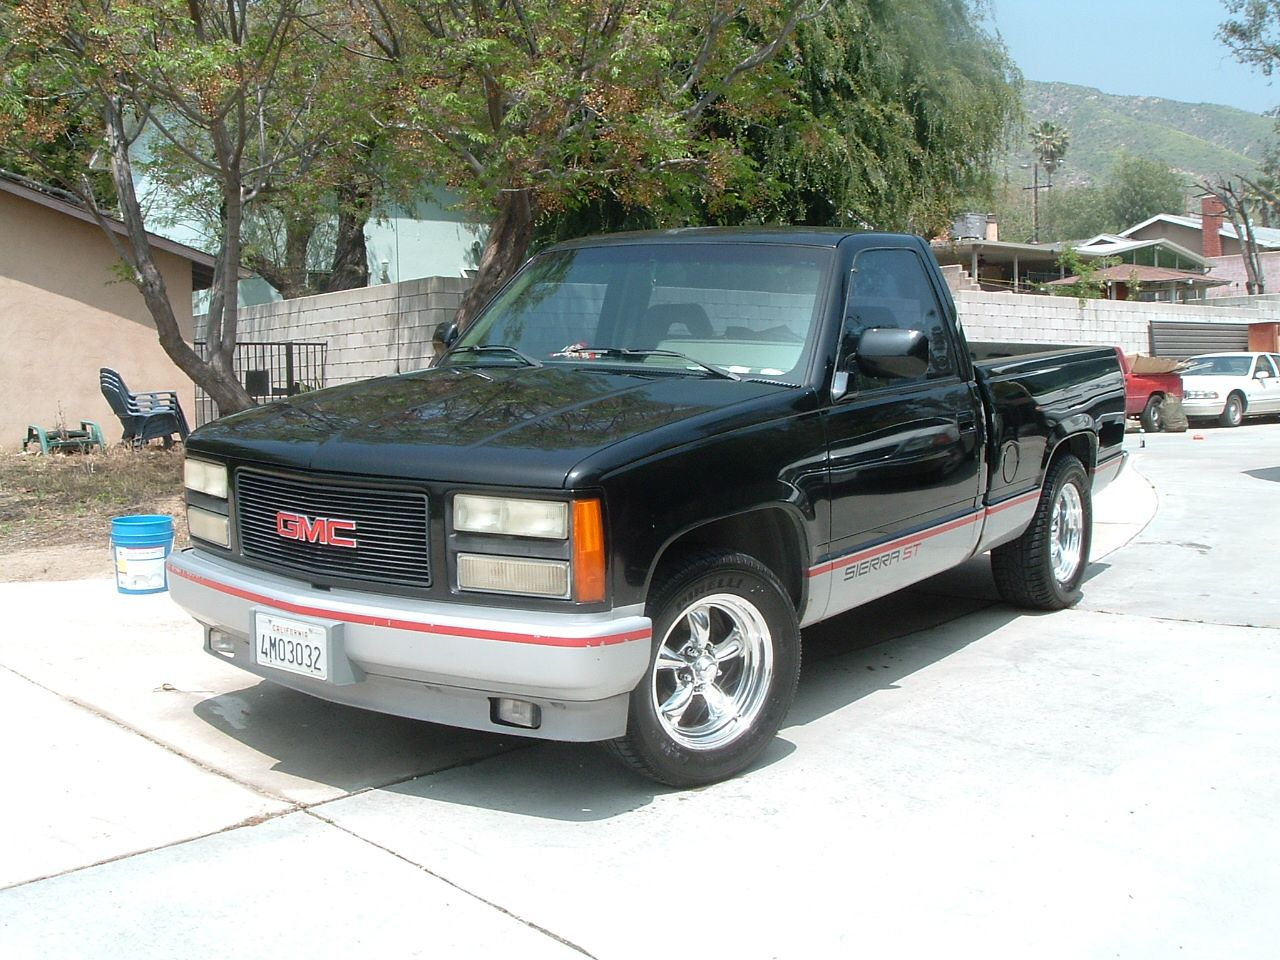 Feed pictures gmc pickup true parts and accessories buy 404 car parts